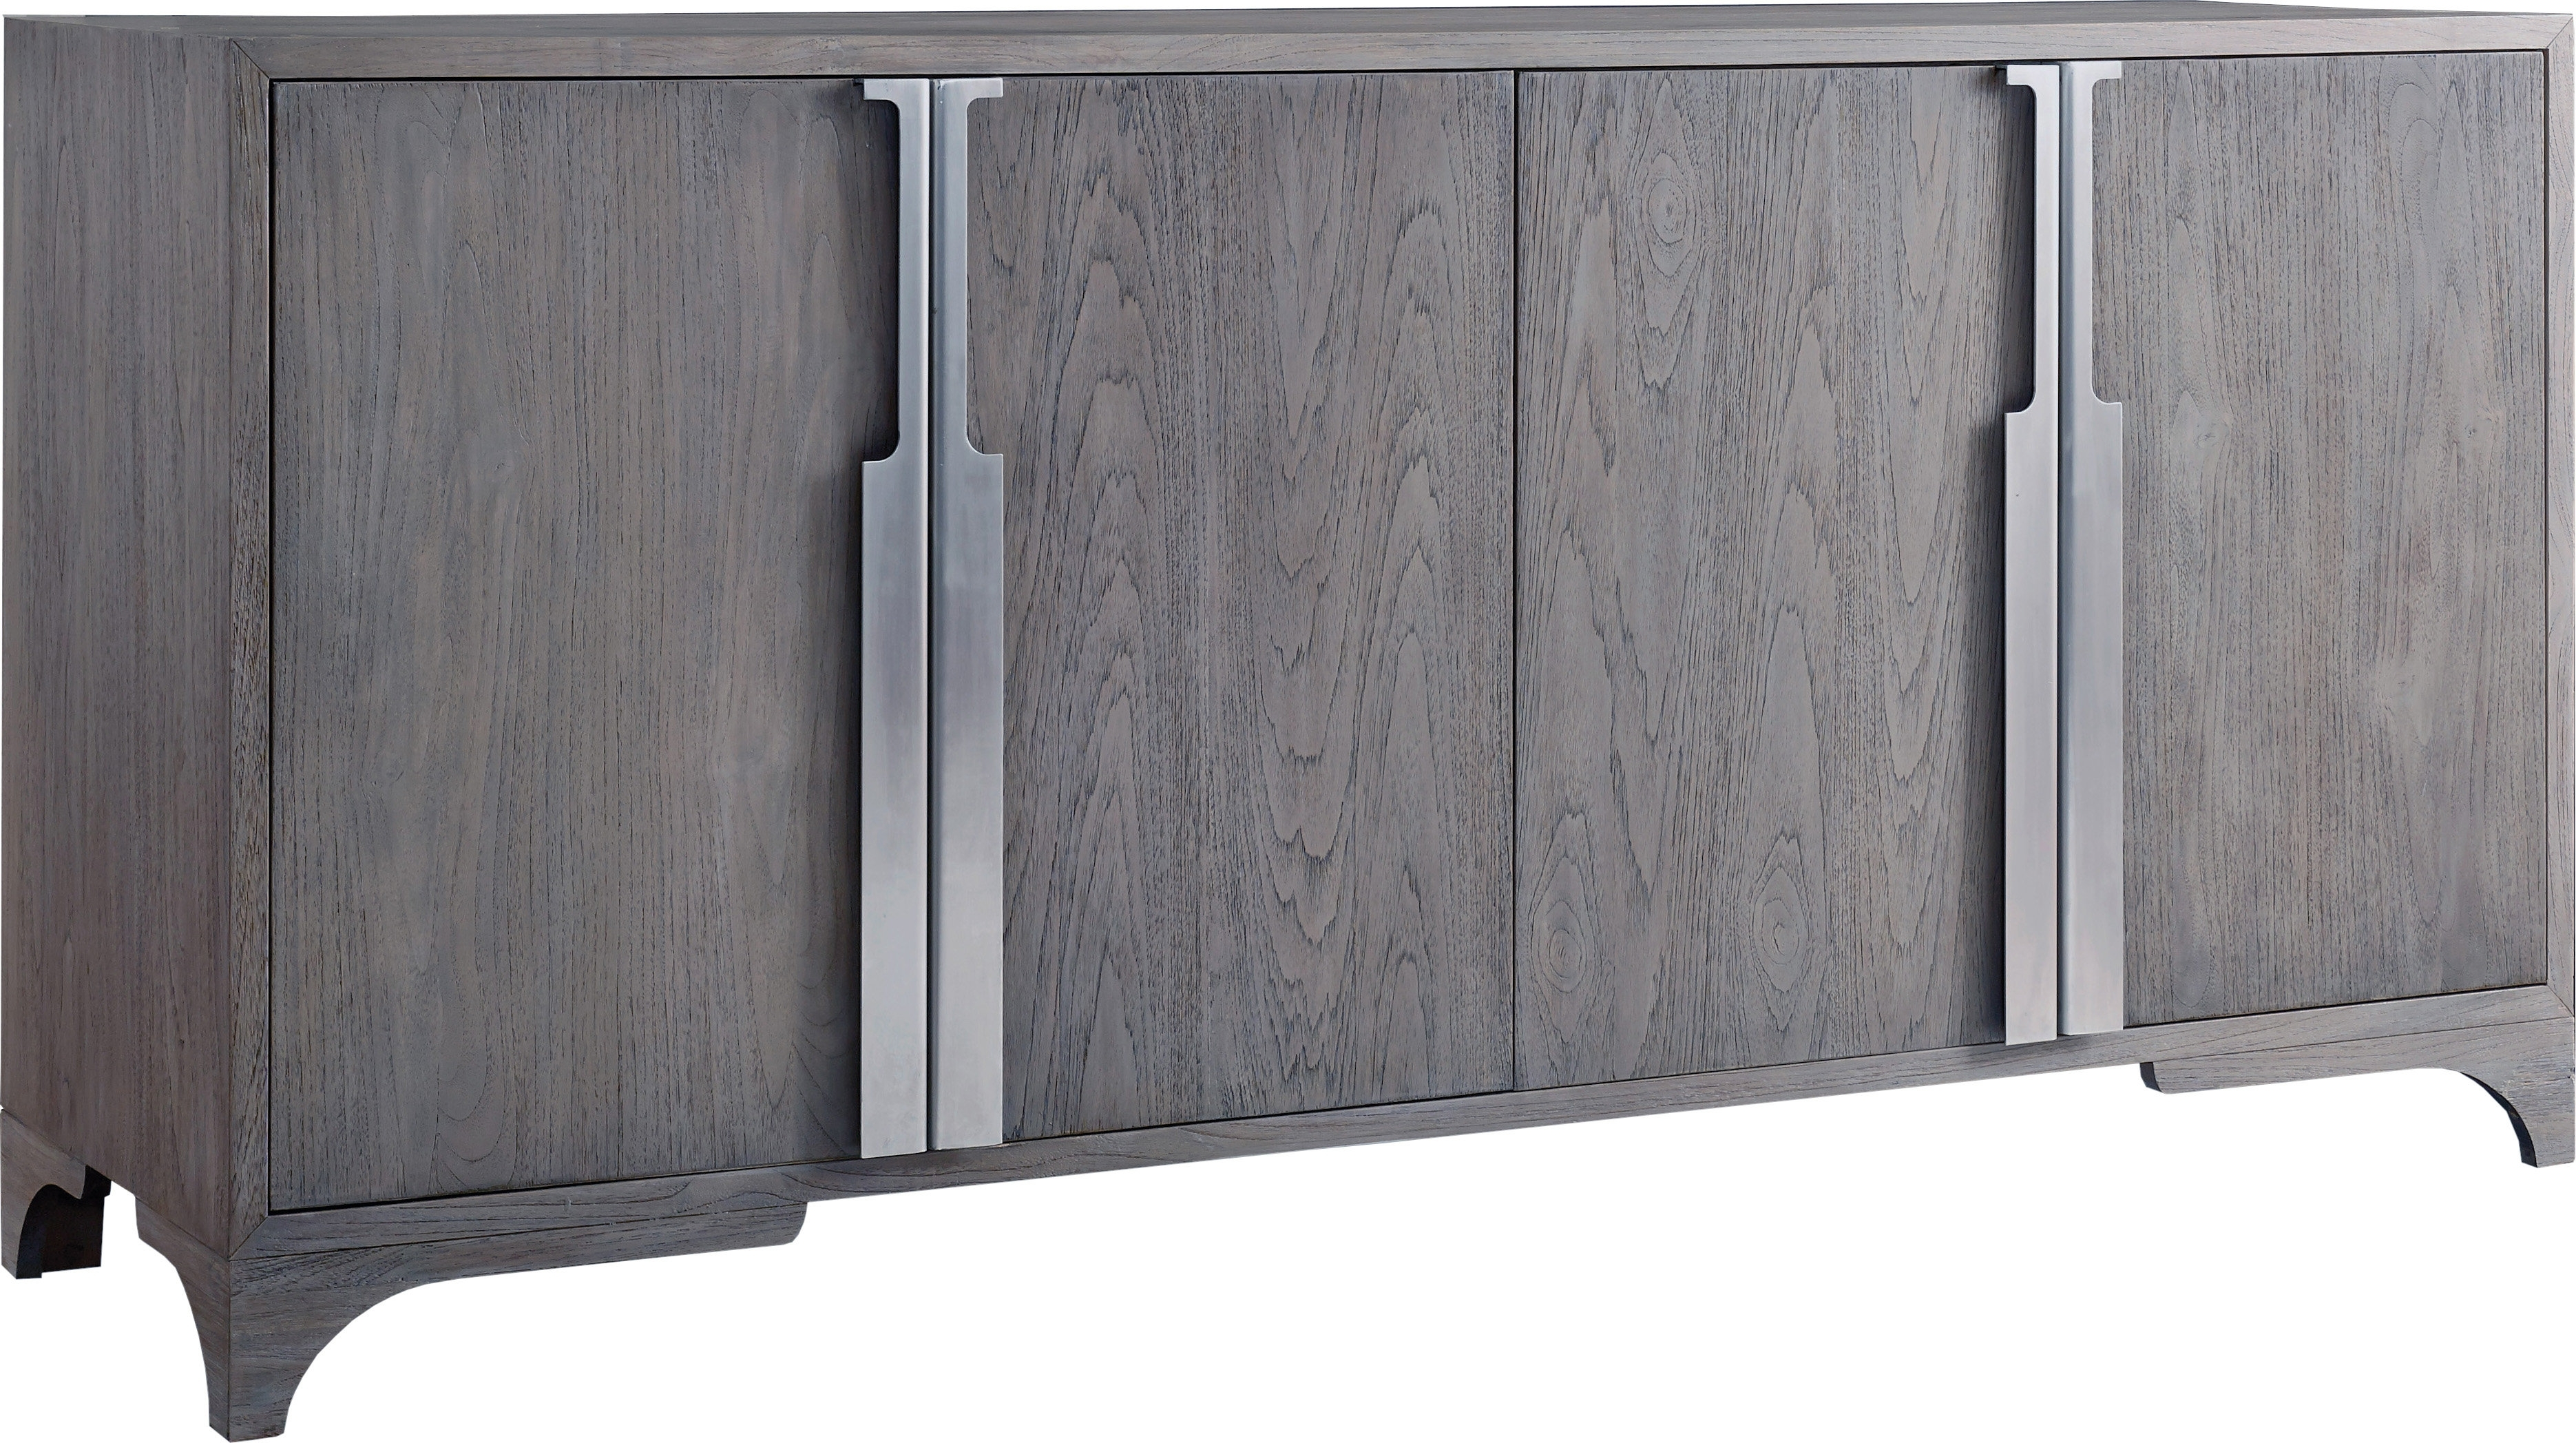 Brownstone Furniture Palmer Sideboard | Wayfair within Solar Refinement Sideboards (Image 3 of 30)